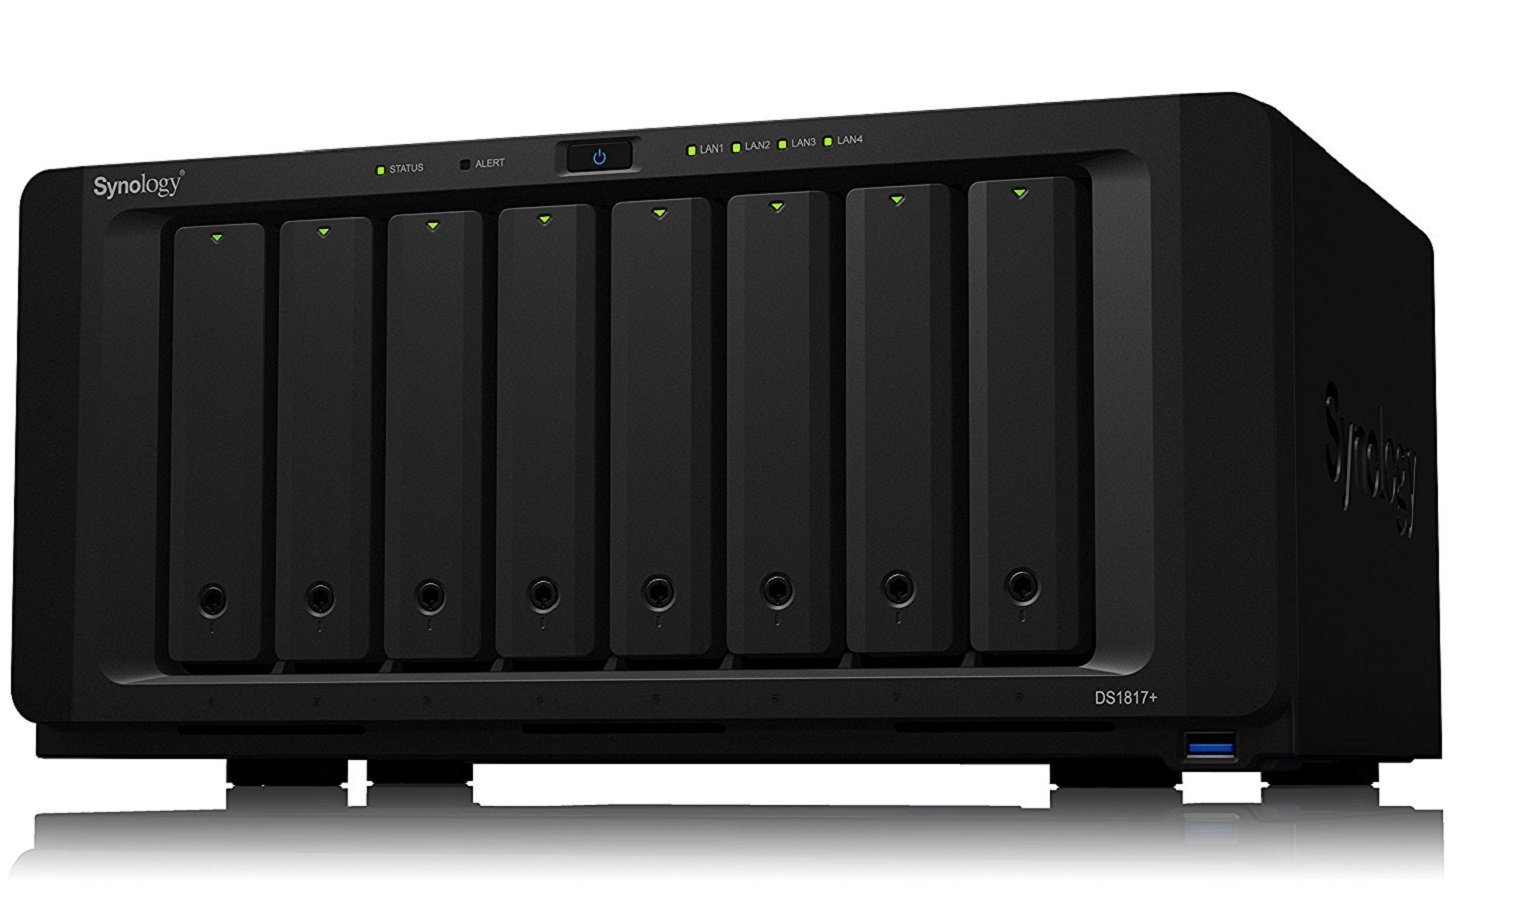 Synology DS1817+ (8GB) 8 - bay NAS Disk Station (Diskless) by Synology (Image #3)